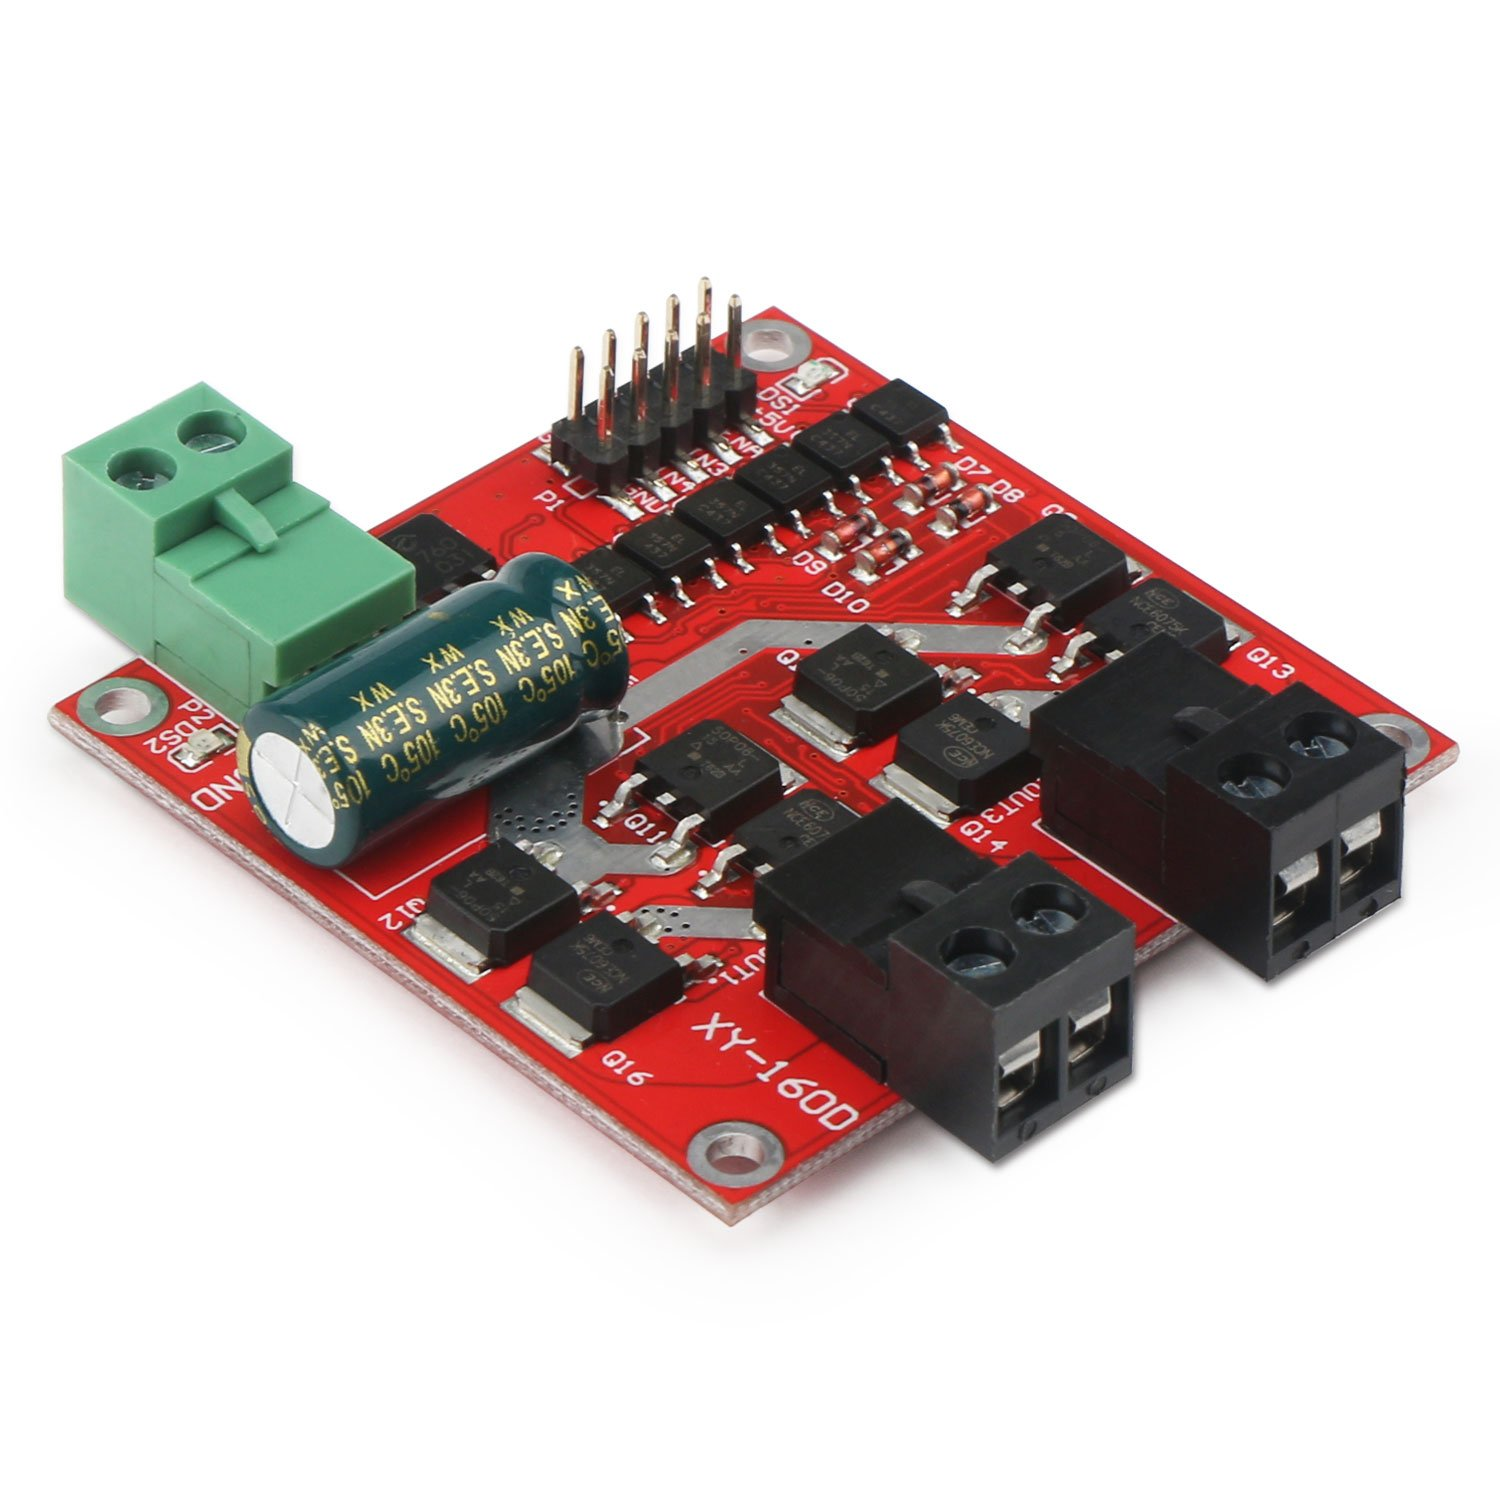 DC Motor Driver, DROK L298 Dual H Bridge Motor Speed Controller DC 6.5V-27V 7A PWM Motor Regulator Board 12V 24V Electric Motor Control Module Industrial 160W with Optocoupler Isolation by DROK (Image #3)